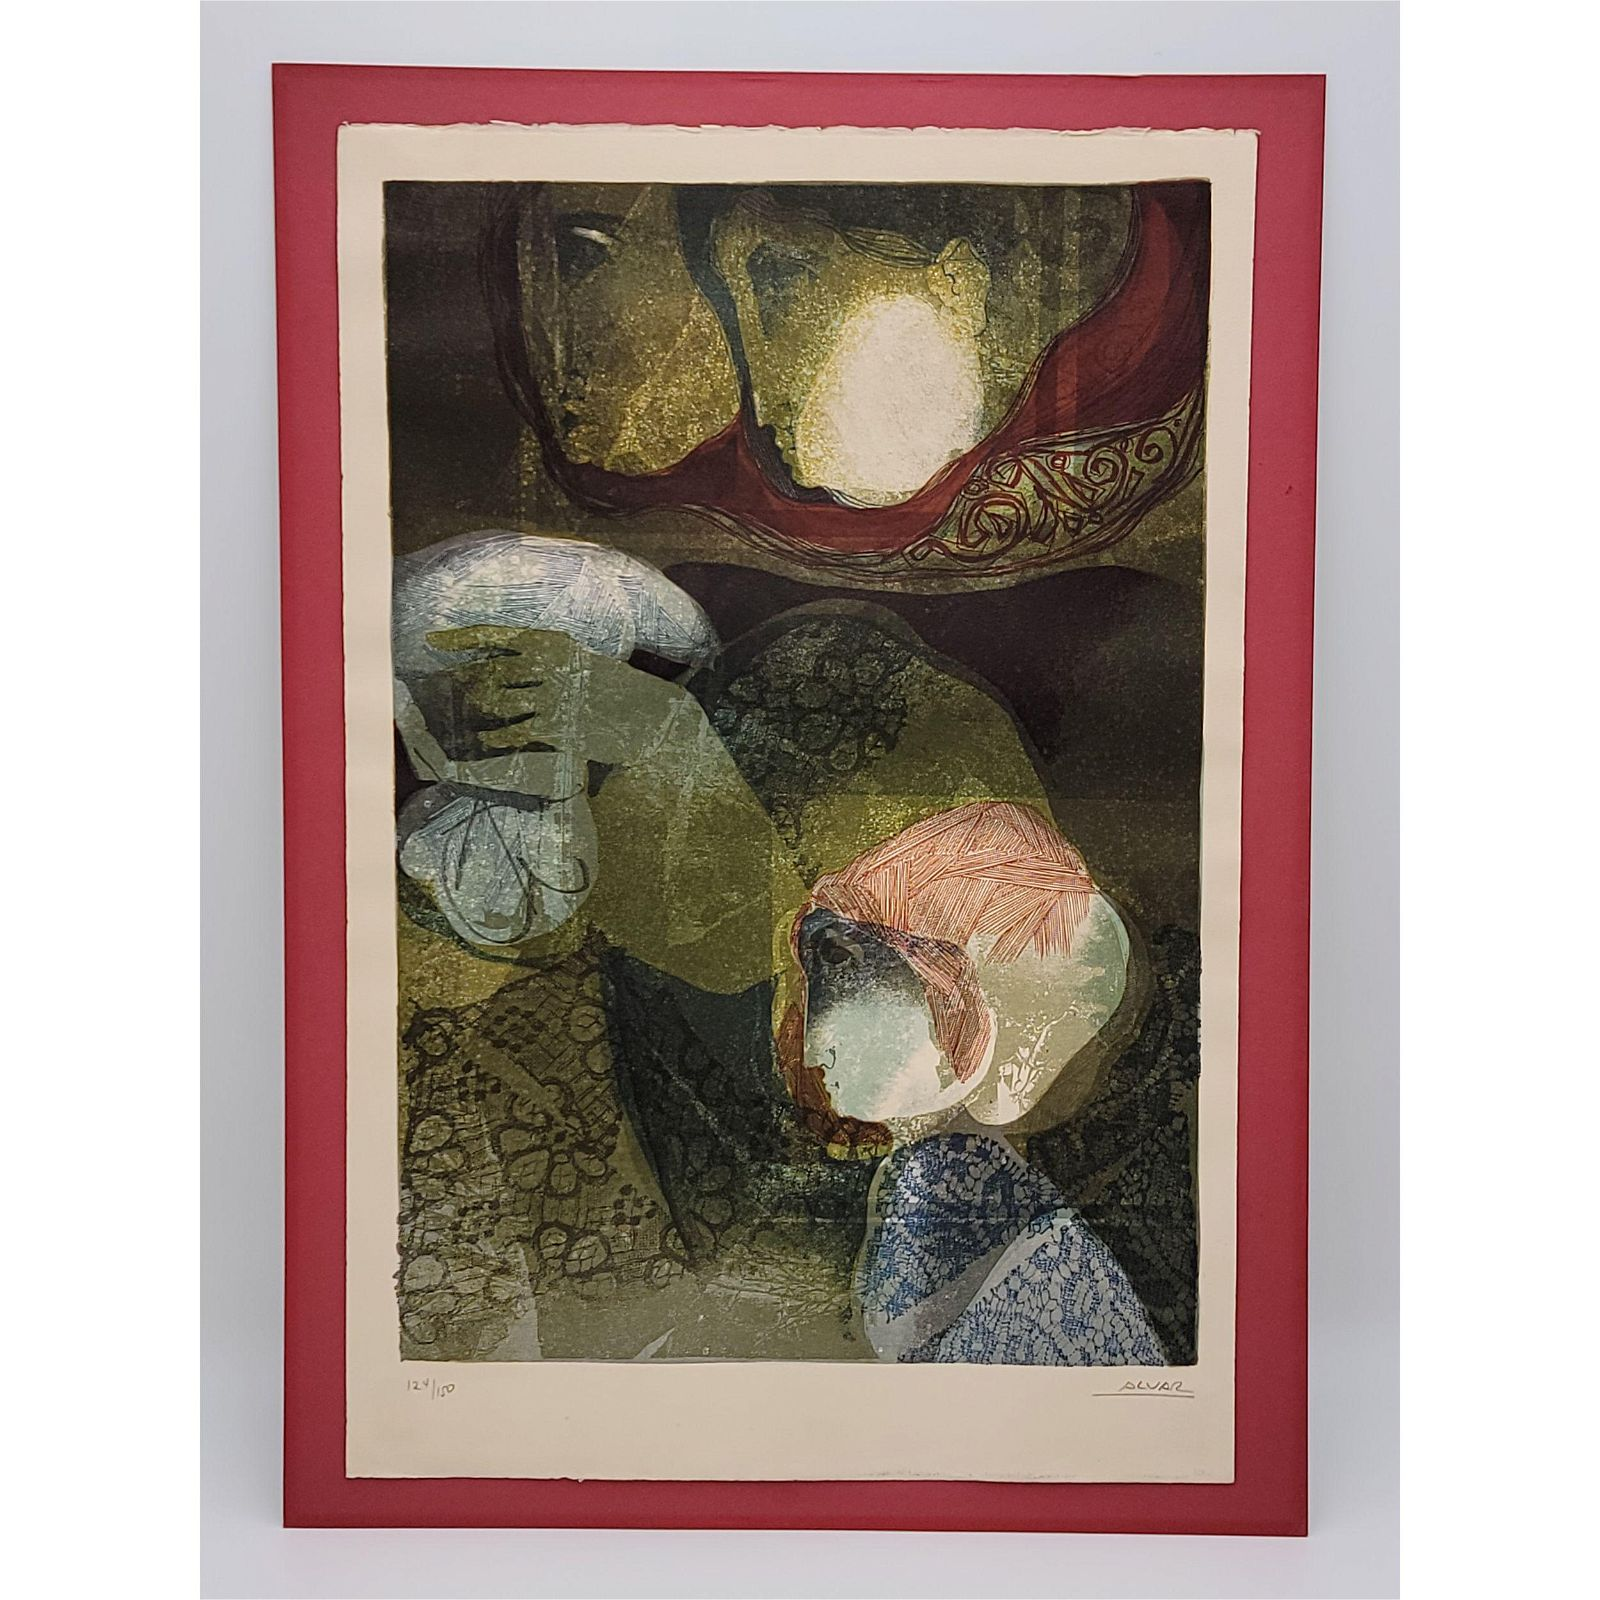 Sunol Alvar Limited Edition Lithograph Signed 124/150